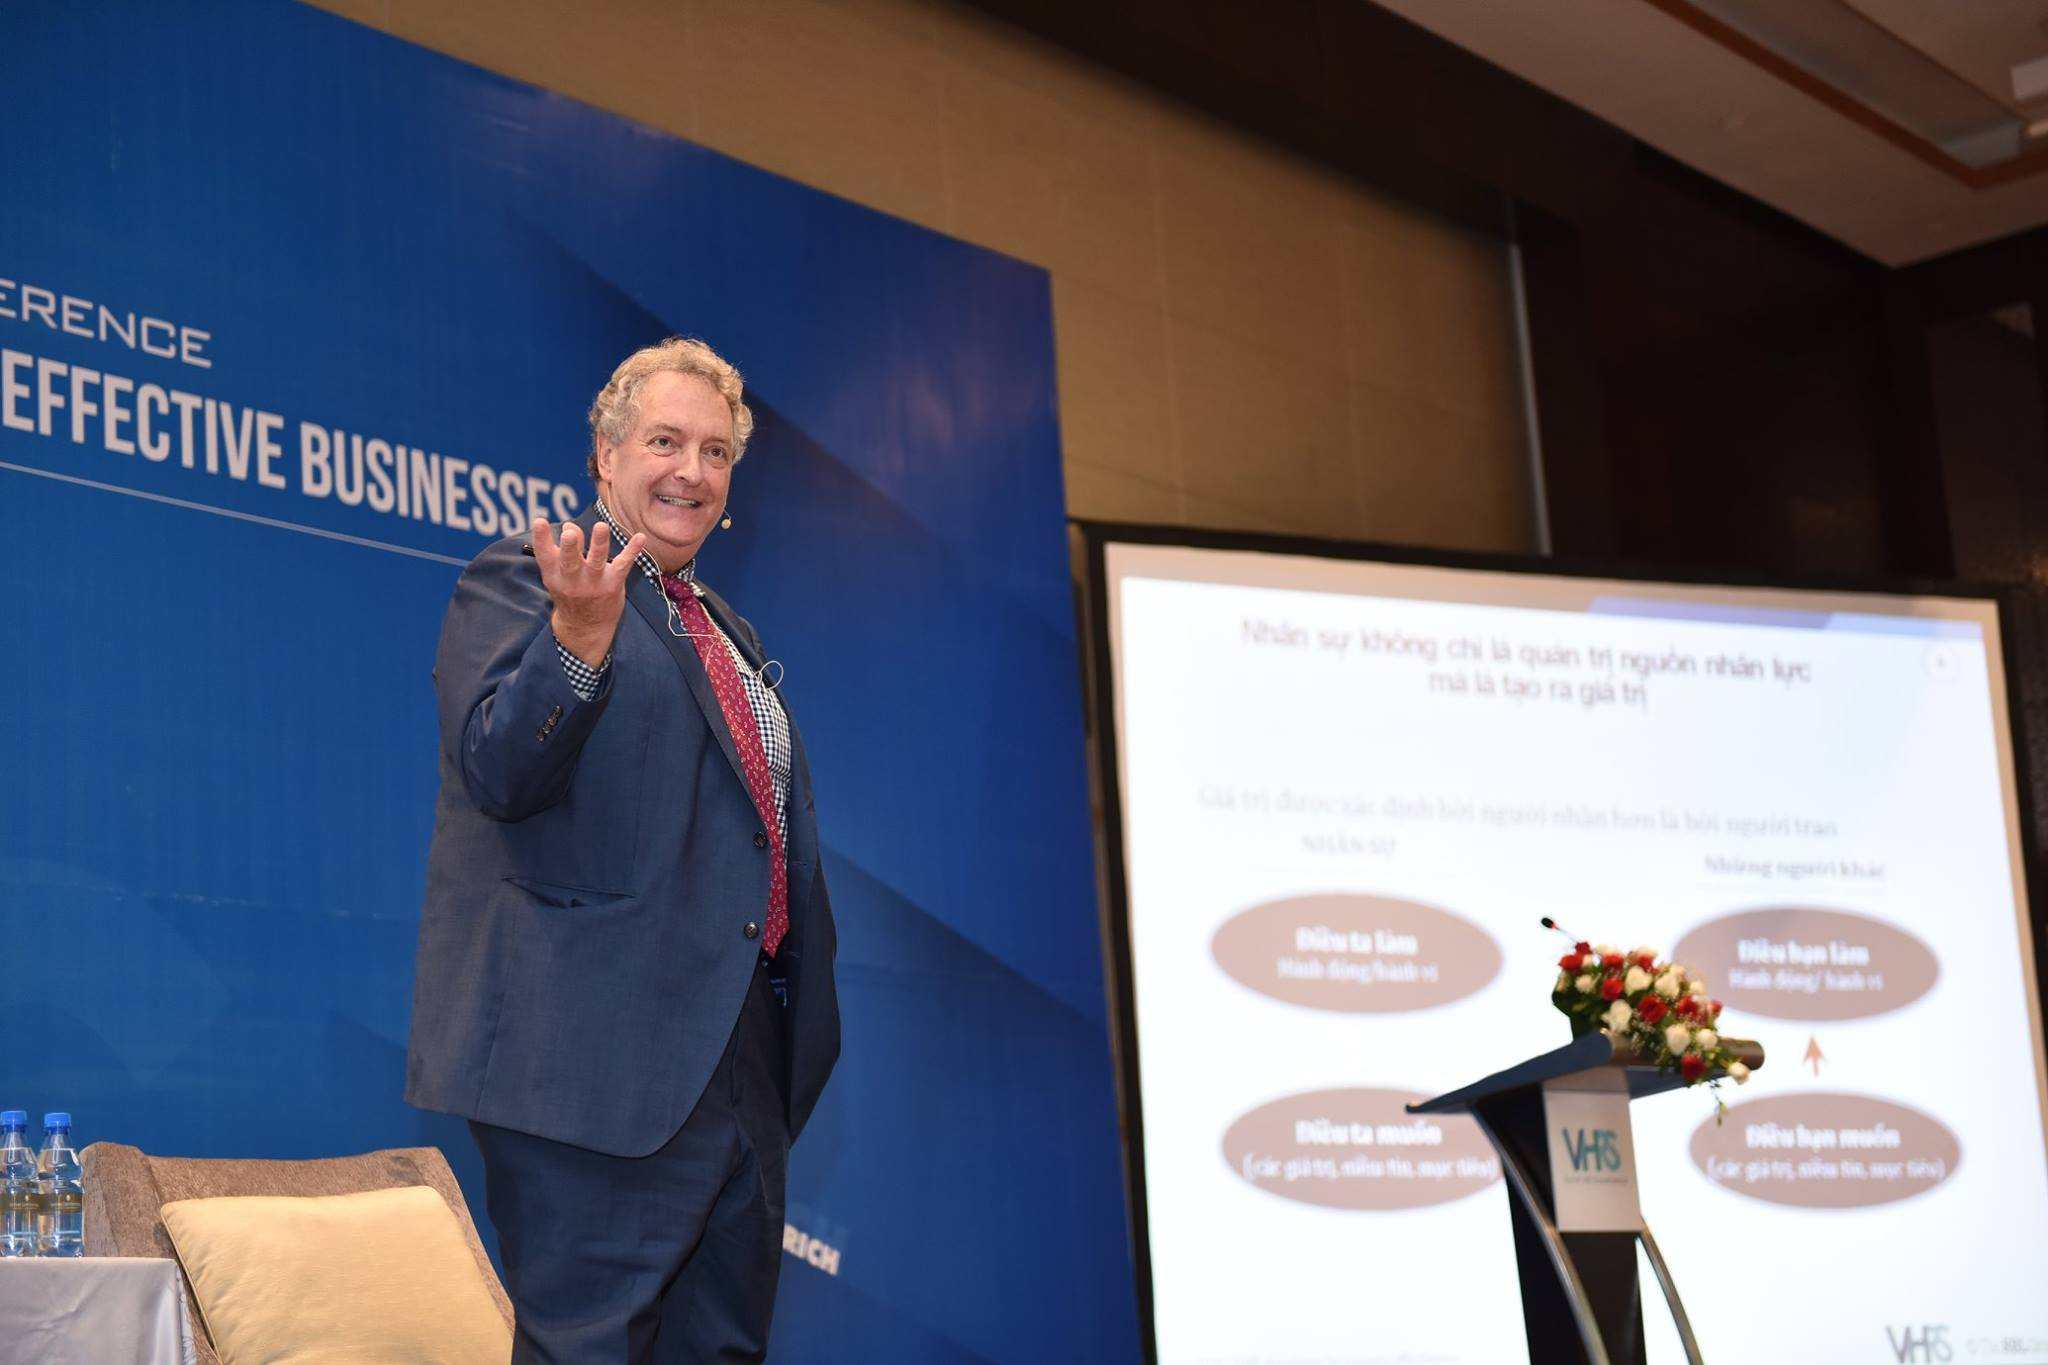 VHRS successfully held an Leadership and HR conference with the lecture by Prof. Dave Ulrich in Vietnam